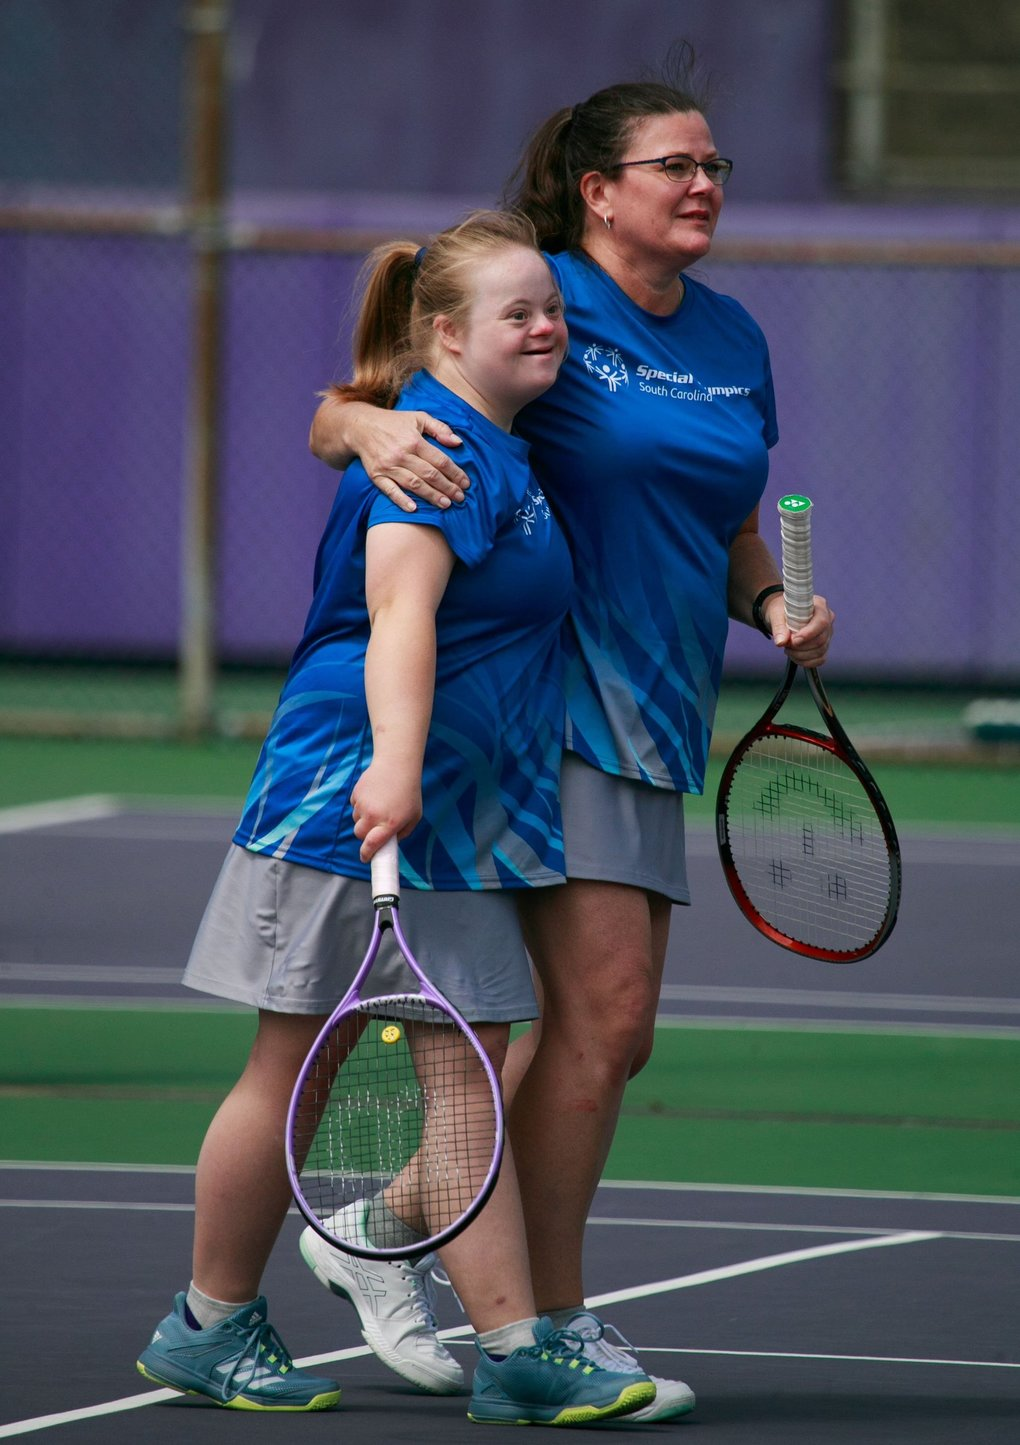 Erin Coats and her mother, Nadine Coats, of South Carolina, hug while competing in tennis during the Special Olympics USA Games at the University of Washington in Seattle on Wednesday. (Erika Schultz / The Seattle Times)